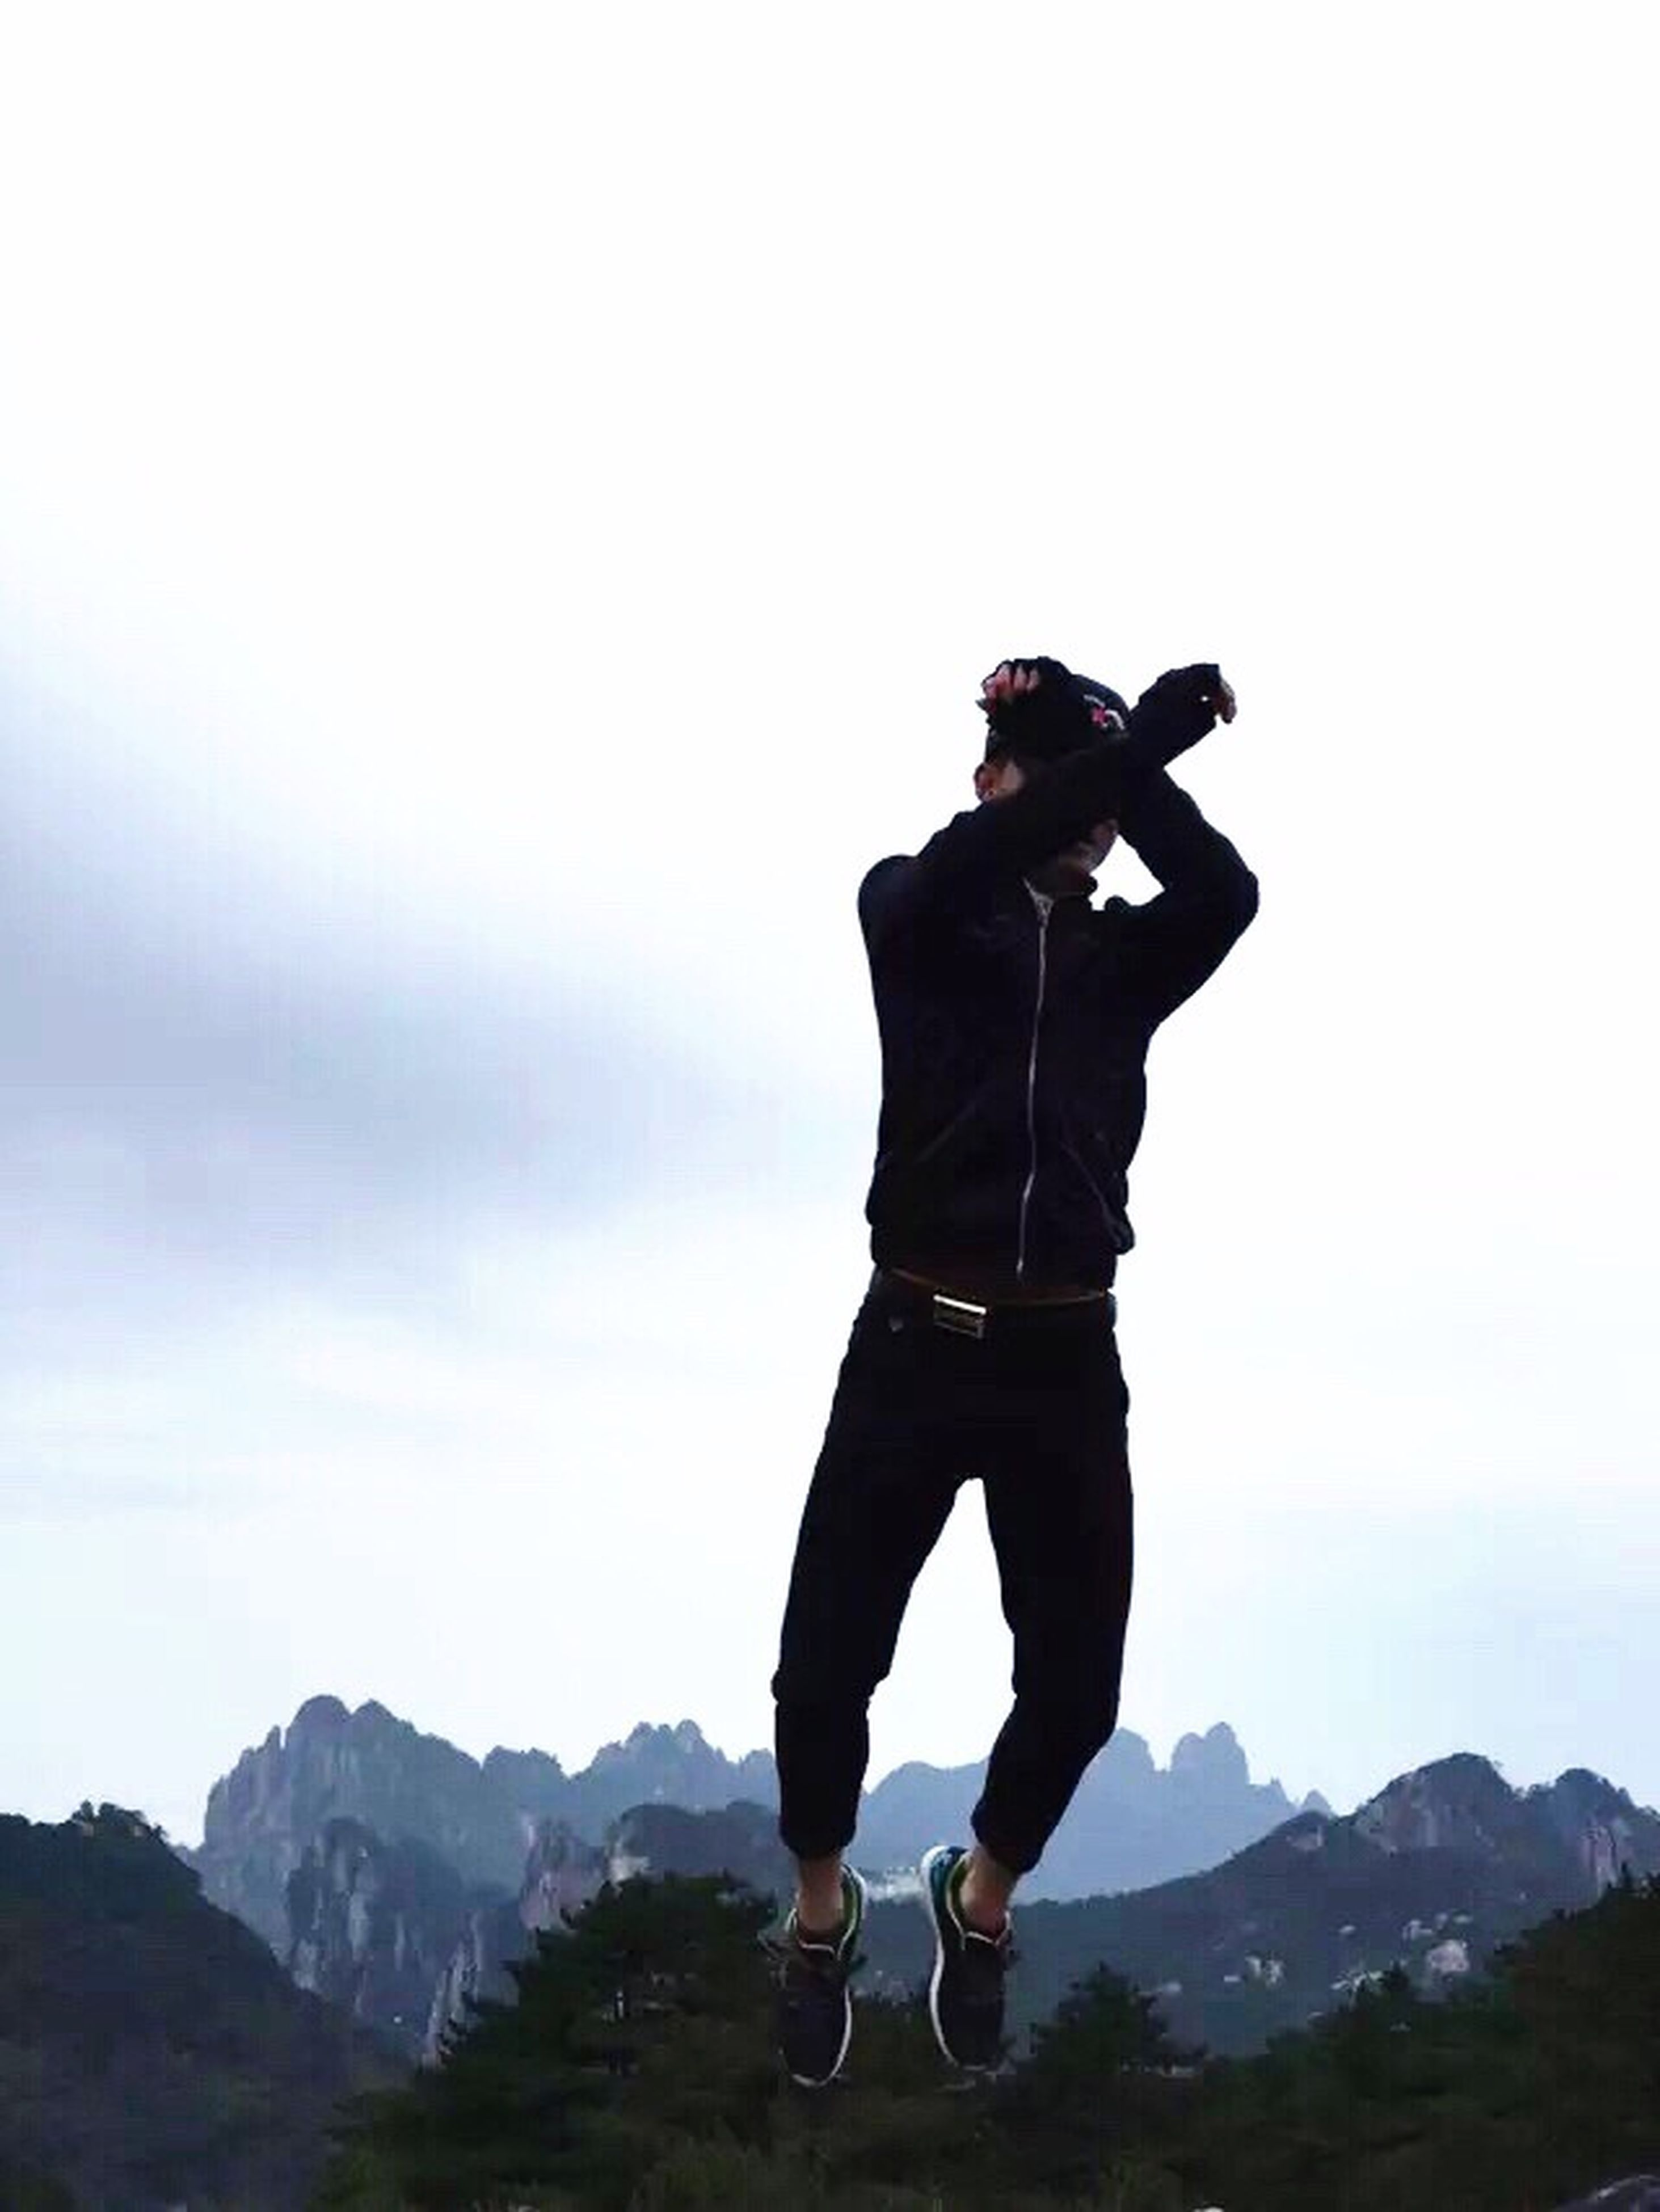 lifestyles, full length, leisure activity, mountain, standing, sky, men, casual clothing, rear view, mountain range, photography themes, arms outstretched, three quarter length, young men, photographing, landscape, young adult, holding